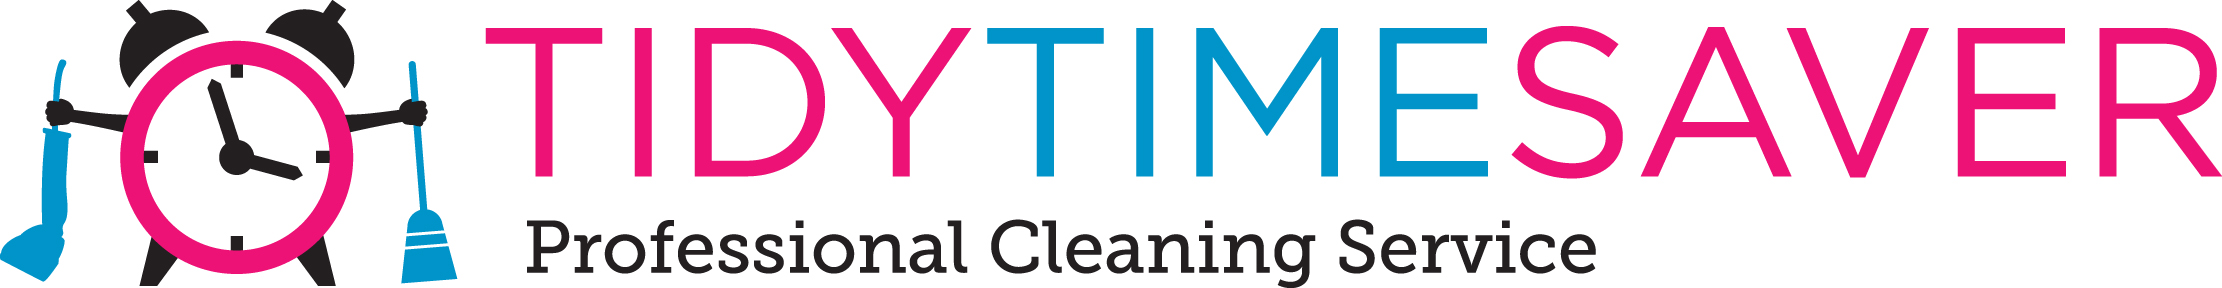 Tidy Time Saver Cleaning Service logo